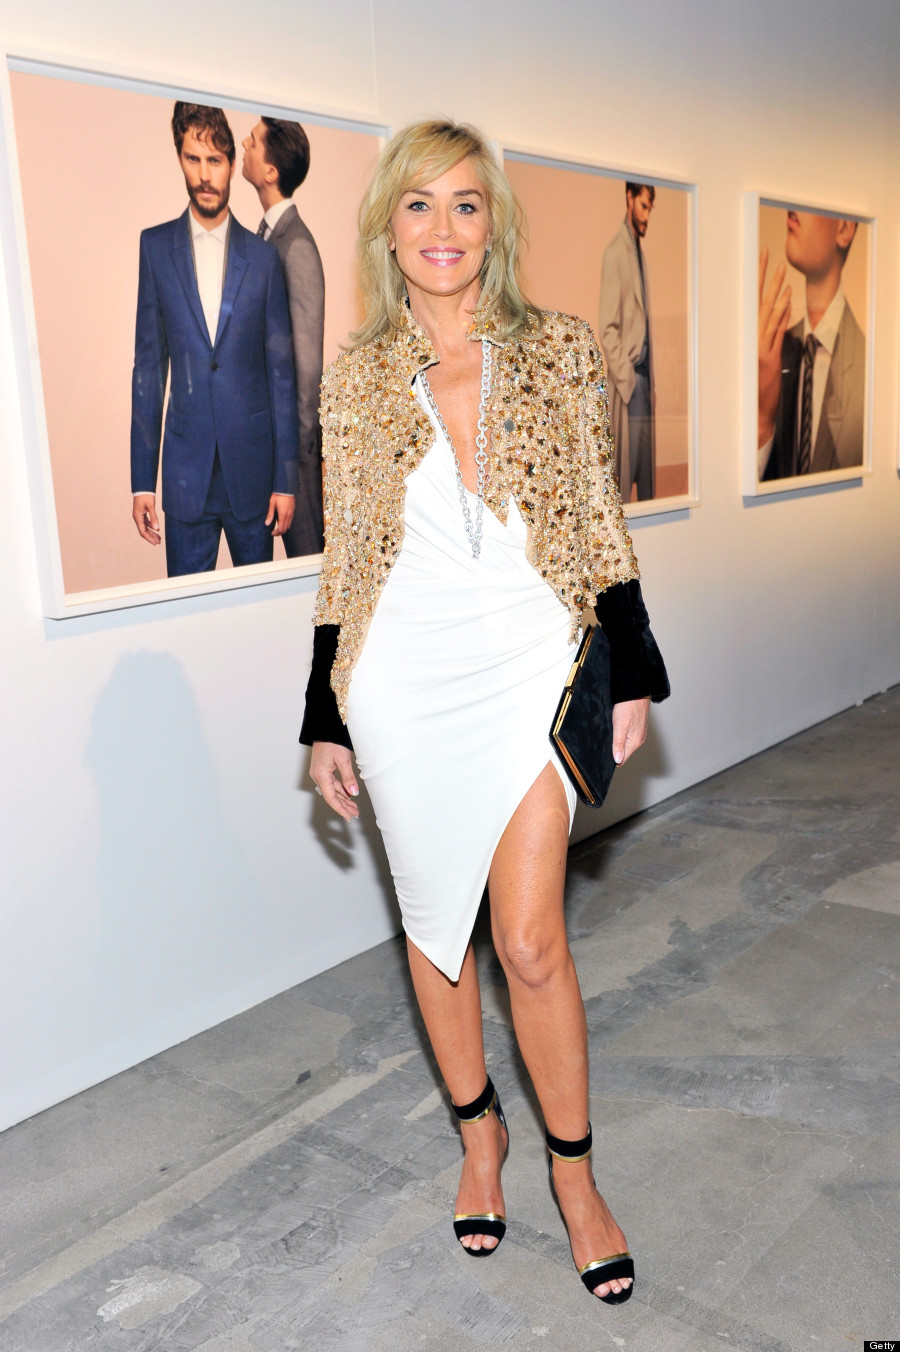 Sharon stone does not age at all in sexy slit dress photos